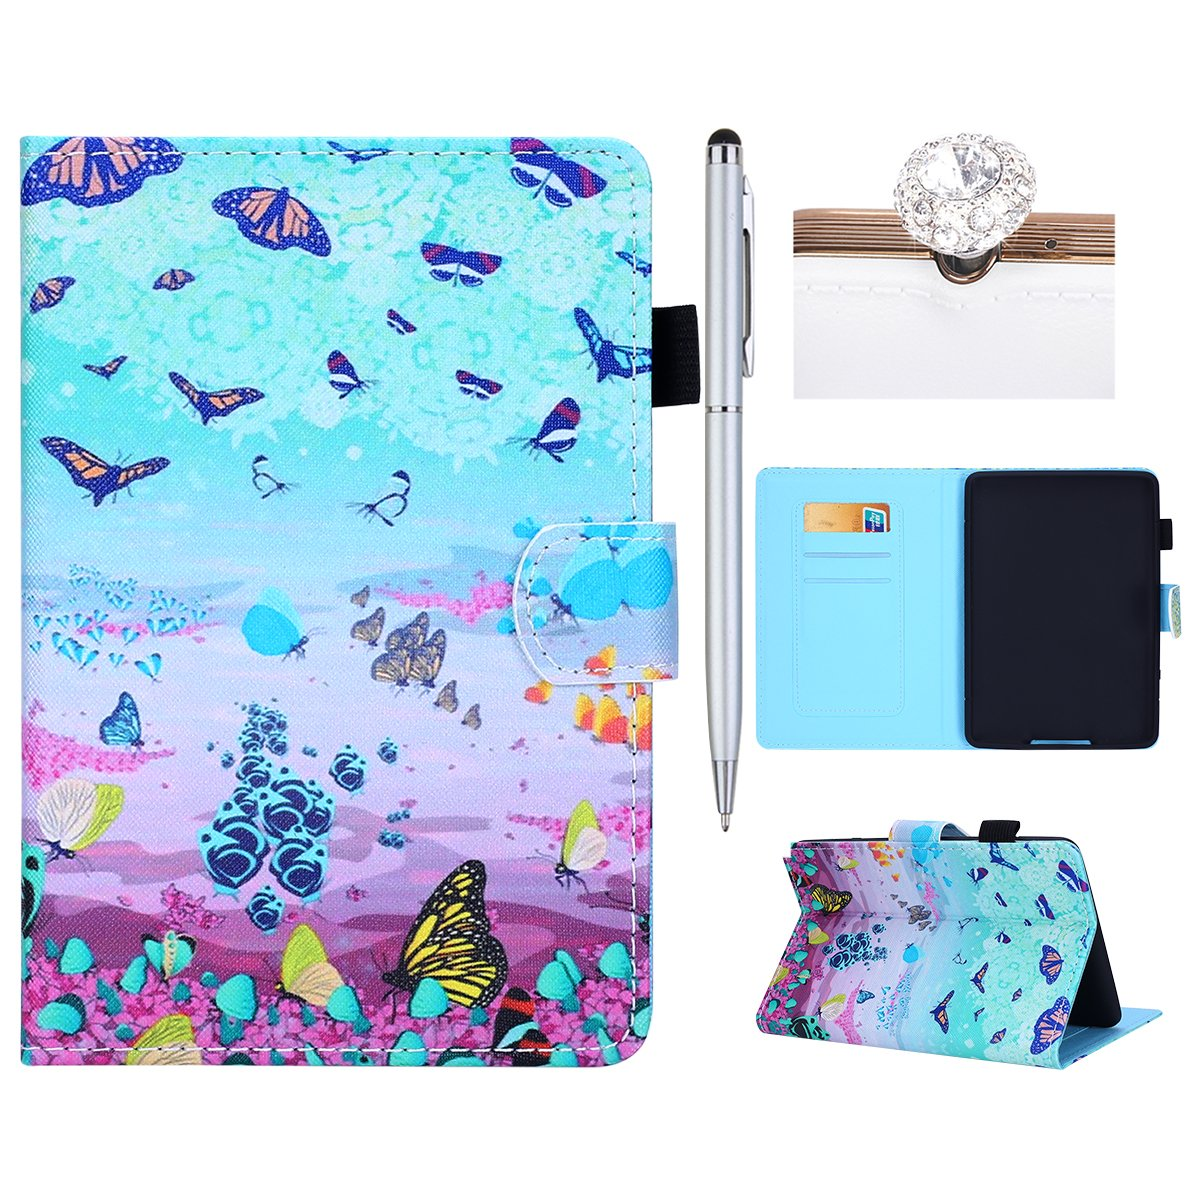 Felfy Kindle Paperwhite1/2/3 Case Leather, Cover for Kindle Paperwhite1/2/3,Premium Leather Ultra Thin Lightweight Flower and Cute Cartoon Pattern Series Cover Case, Wallet Flip Cover with Magnetic Closure Stand Function Kickstand Folding Shell Card Slots